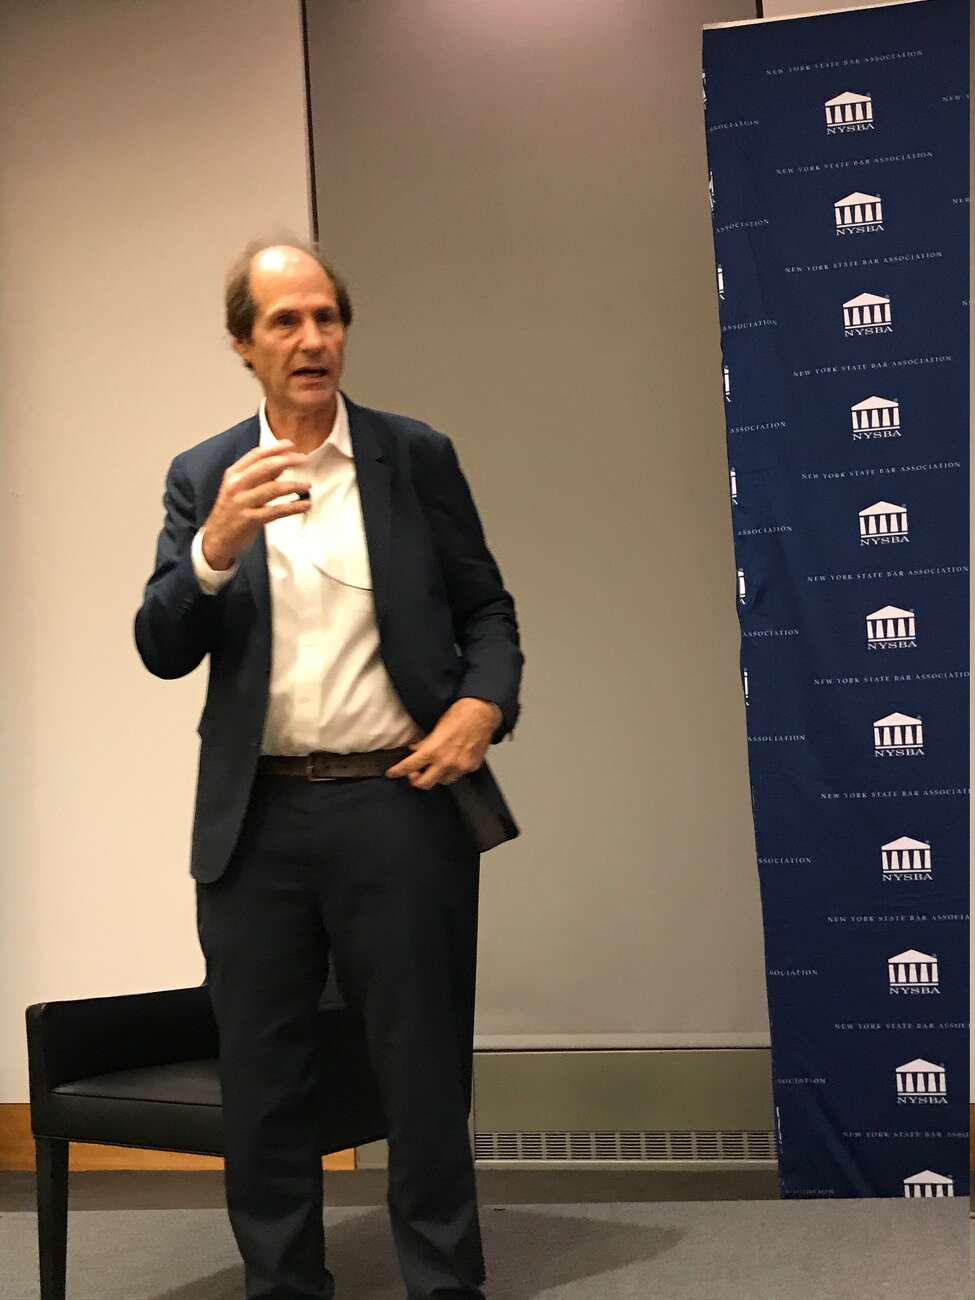 Legal scholar Cass Sunstein discusses what constitutions an impeachable offence at a talk on Oct. 15 at Fordham Law School in New York City